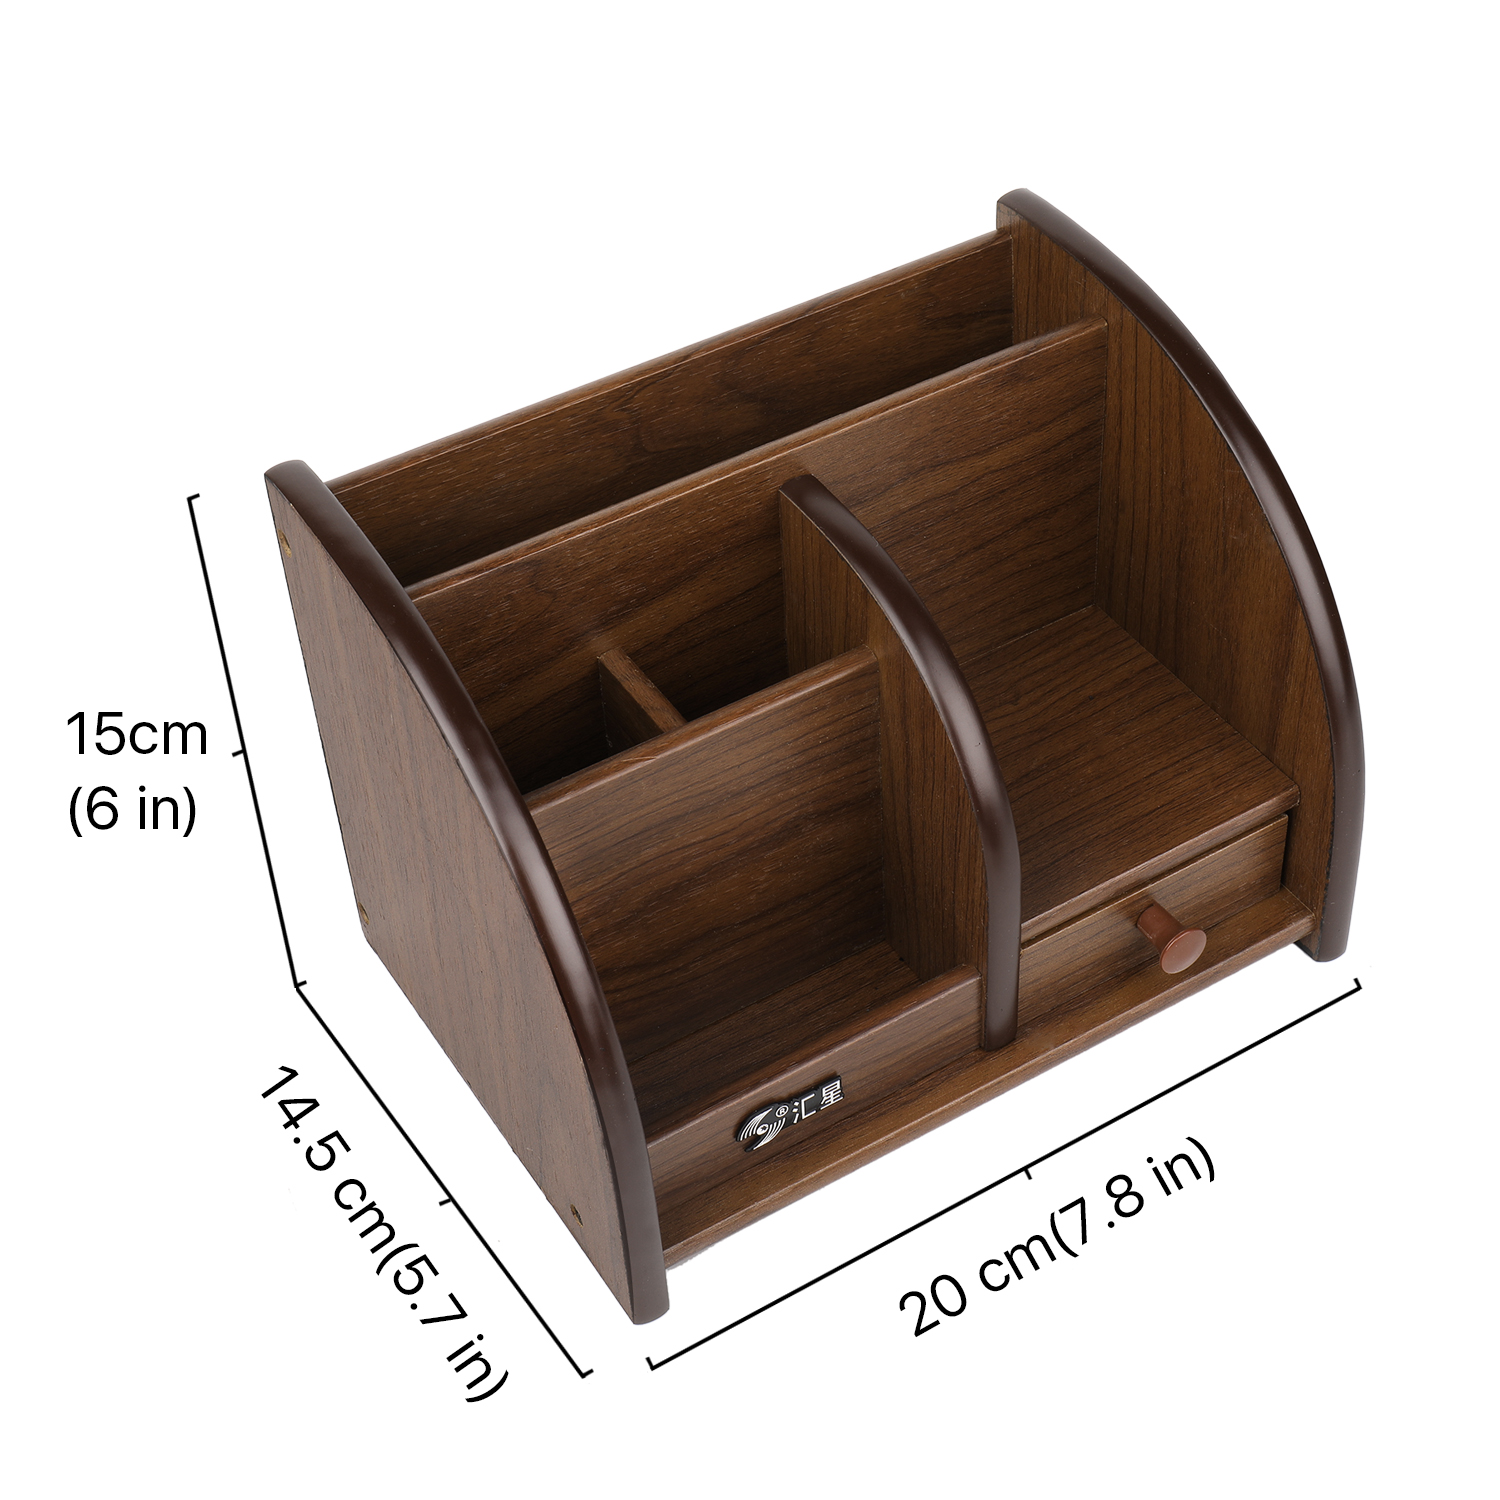 18cm//7.09in Yarn Bowl for Knitting Natural Crafted Wooden Yarn Bowl Knitting Accessories Holder for Home Decoration